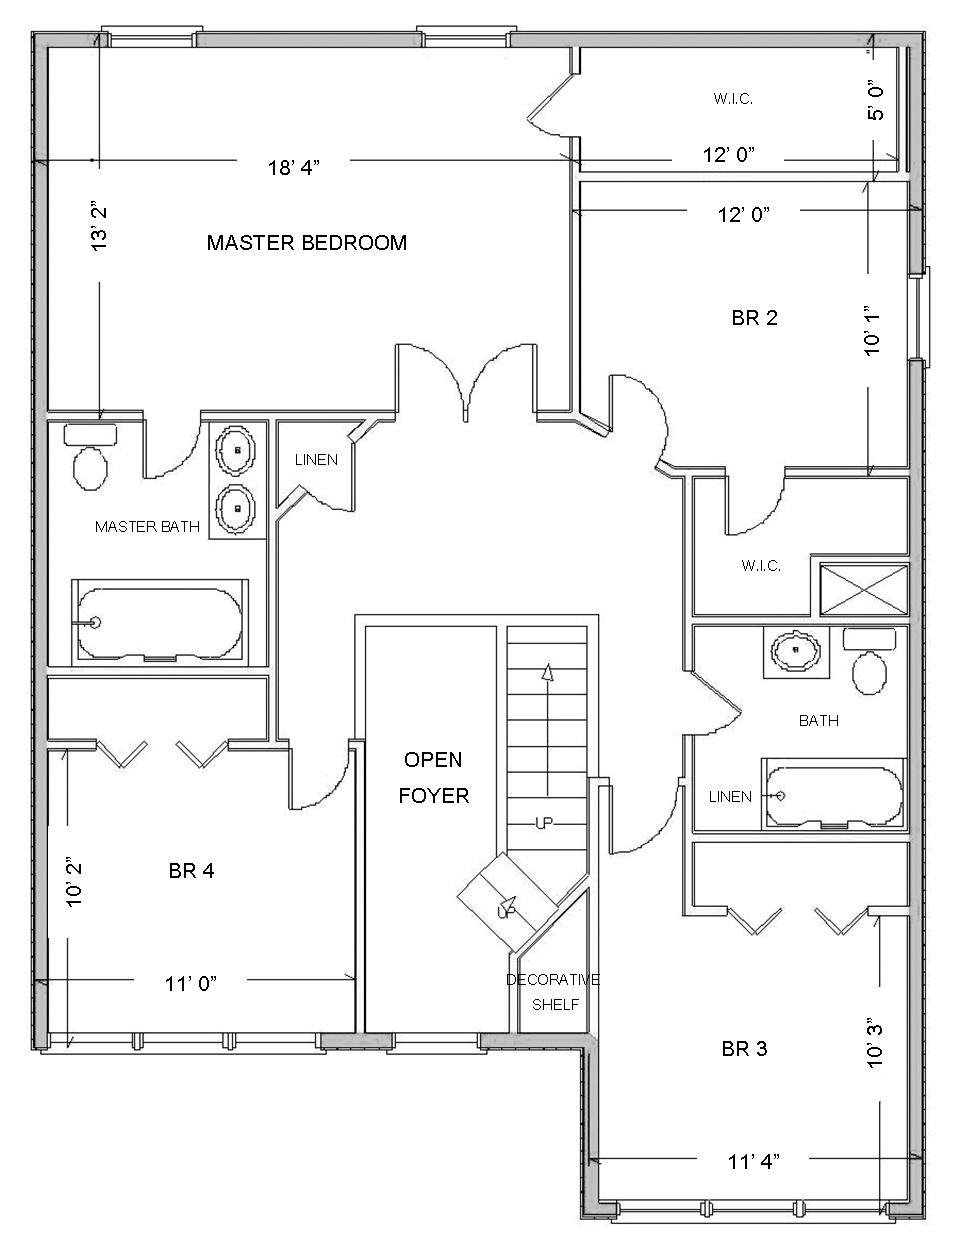 Digital smart draw floor plan with smartdraw software for Make your floor plan